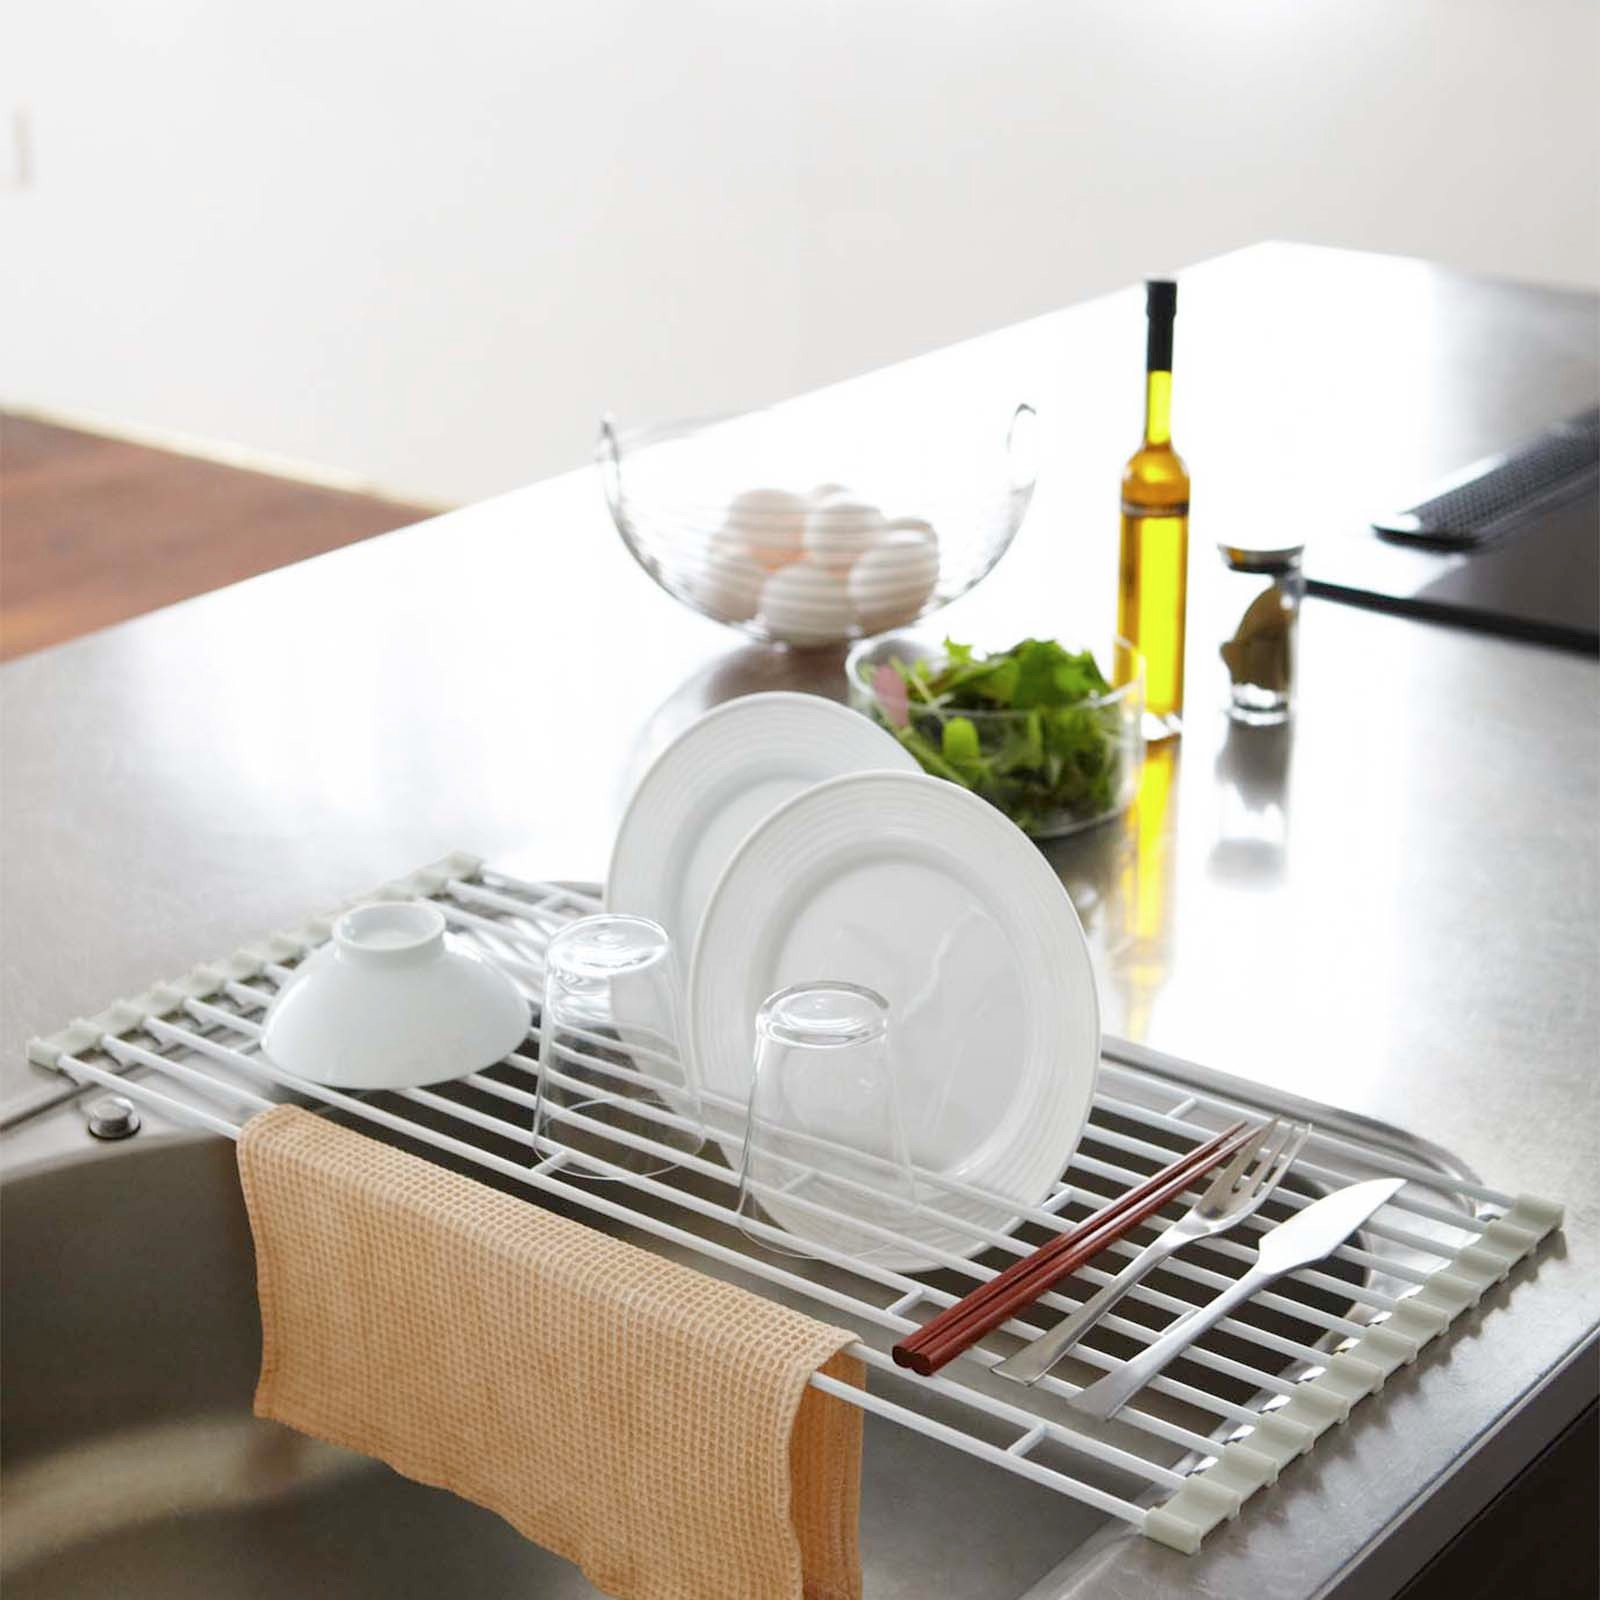 kitchen essentials from calphalon island hood plate folding sink drainer rack by yamazaki home | zola